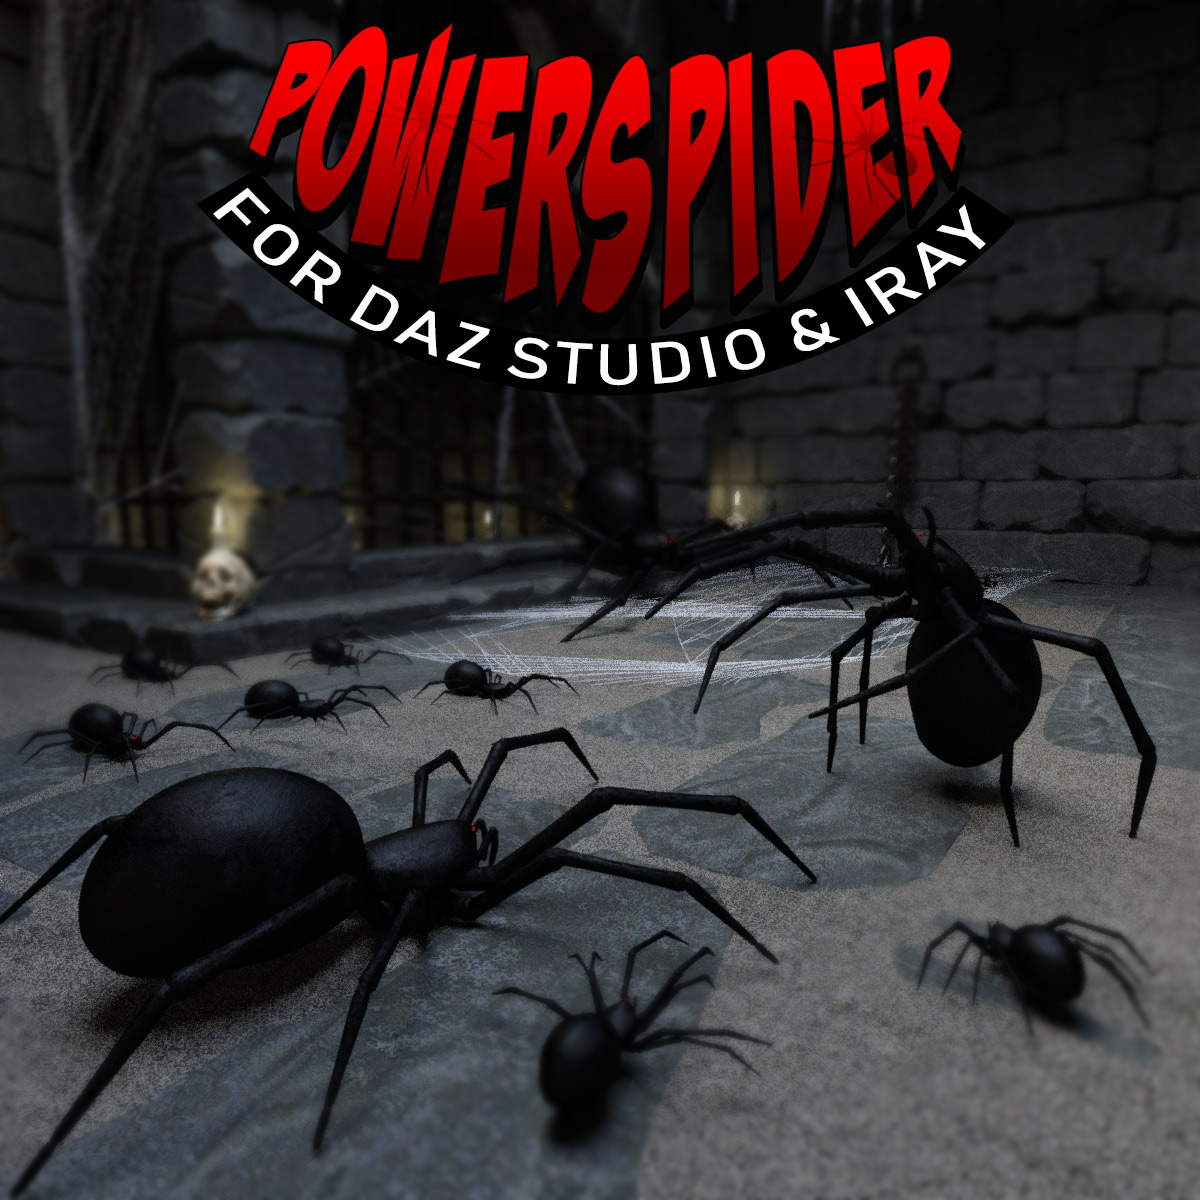 Power Spider for DS Iray